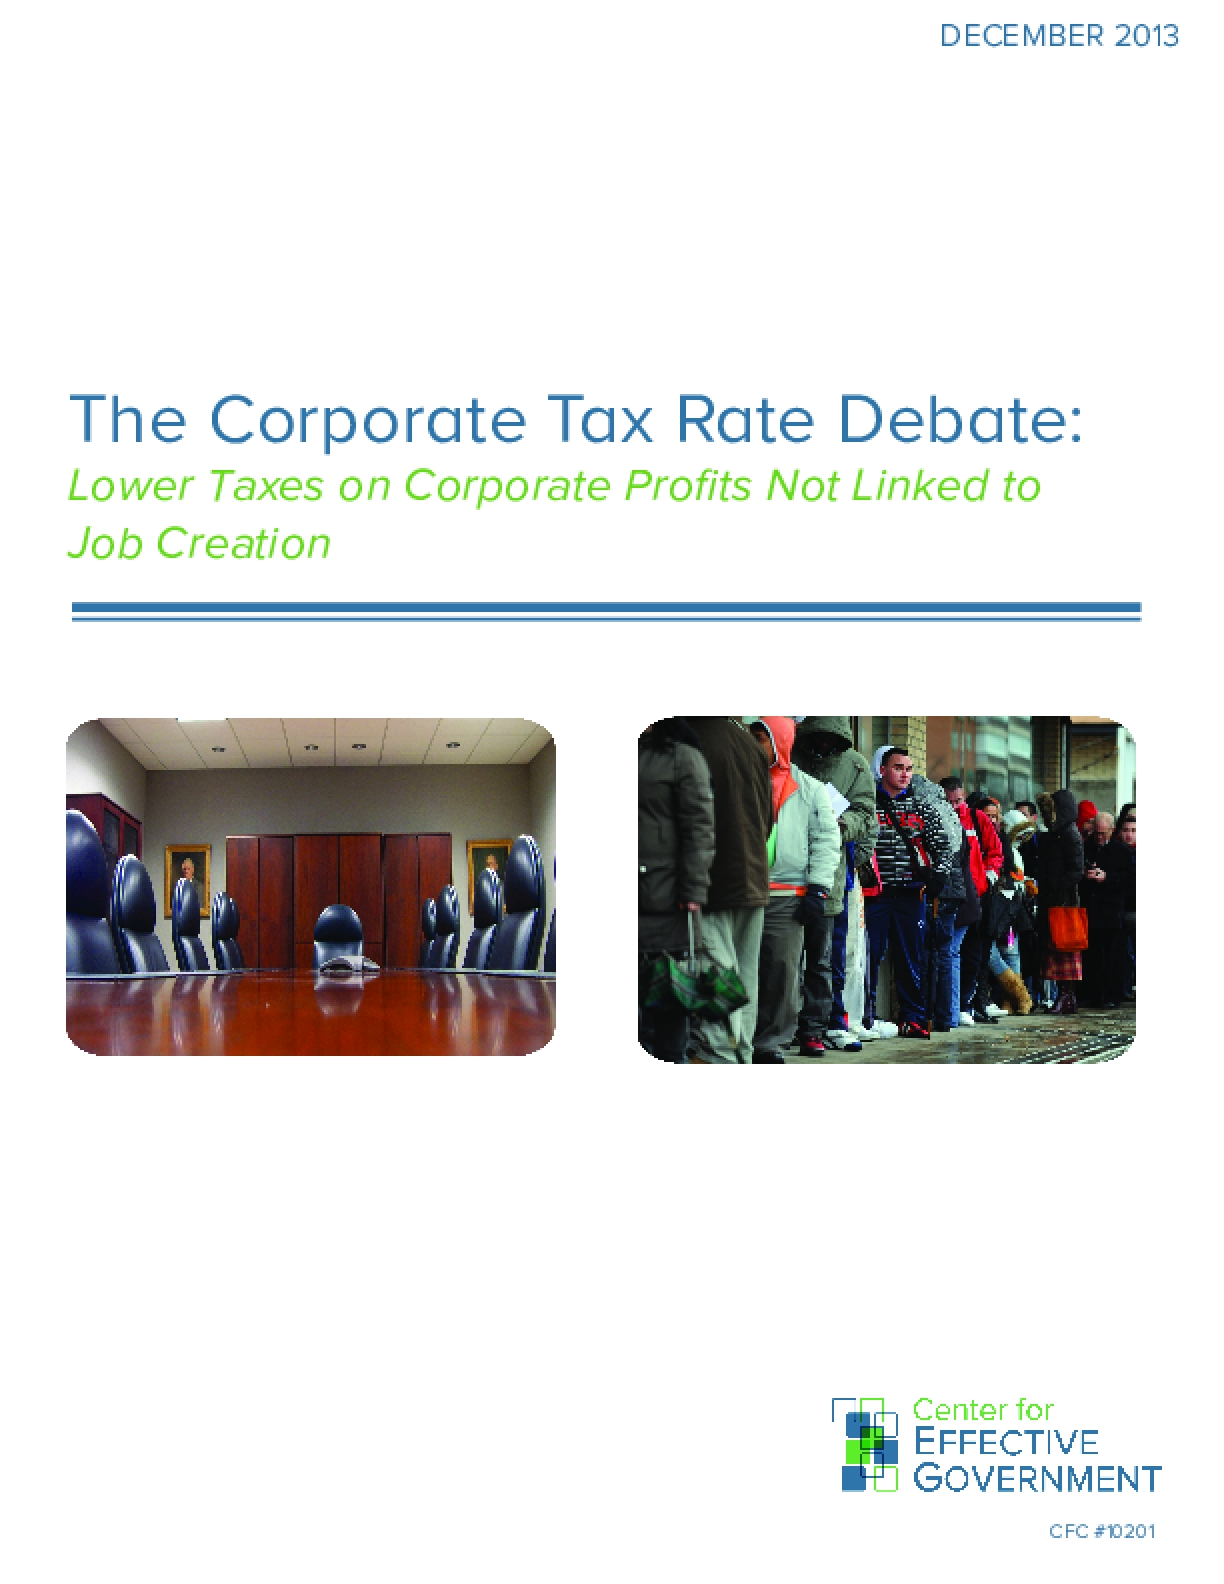 The Corporate Tax Rate Debate: Lower Taxes on Corporate Profits Not Linked to Job Creation